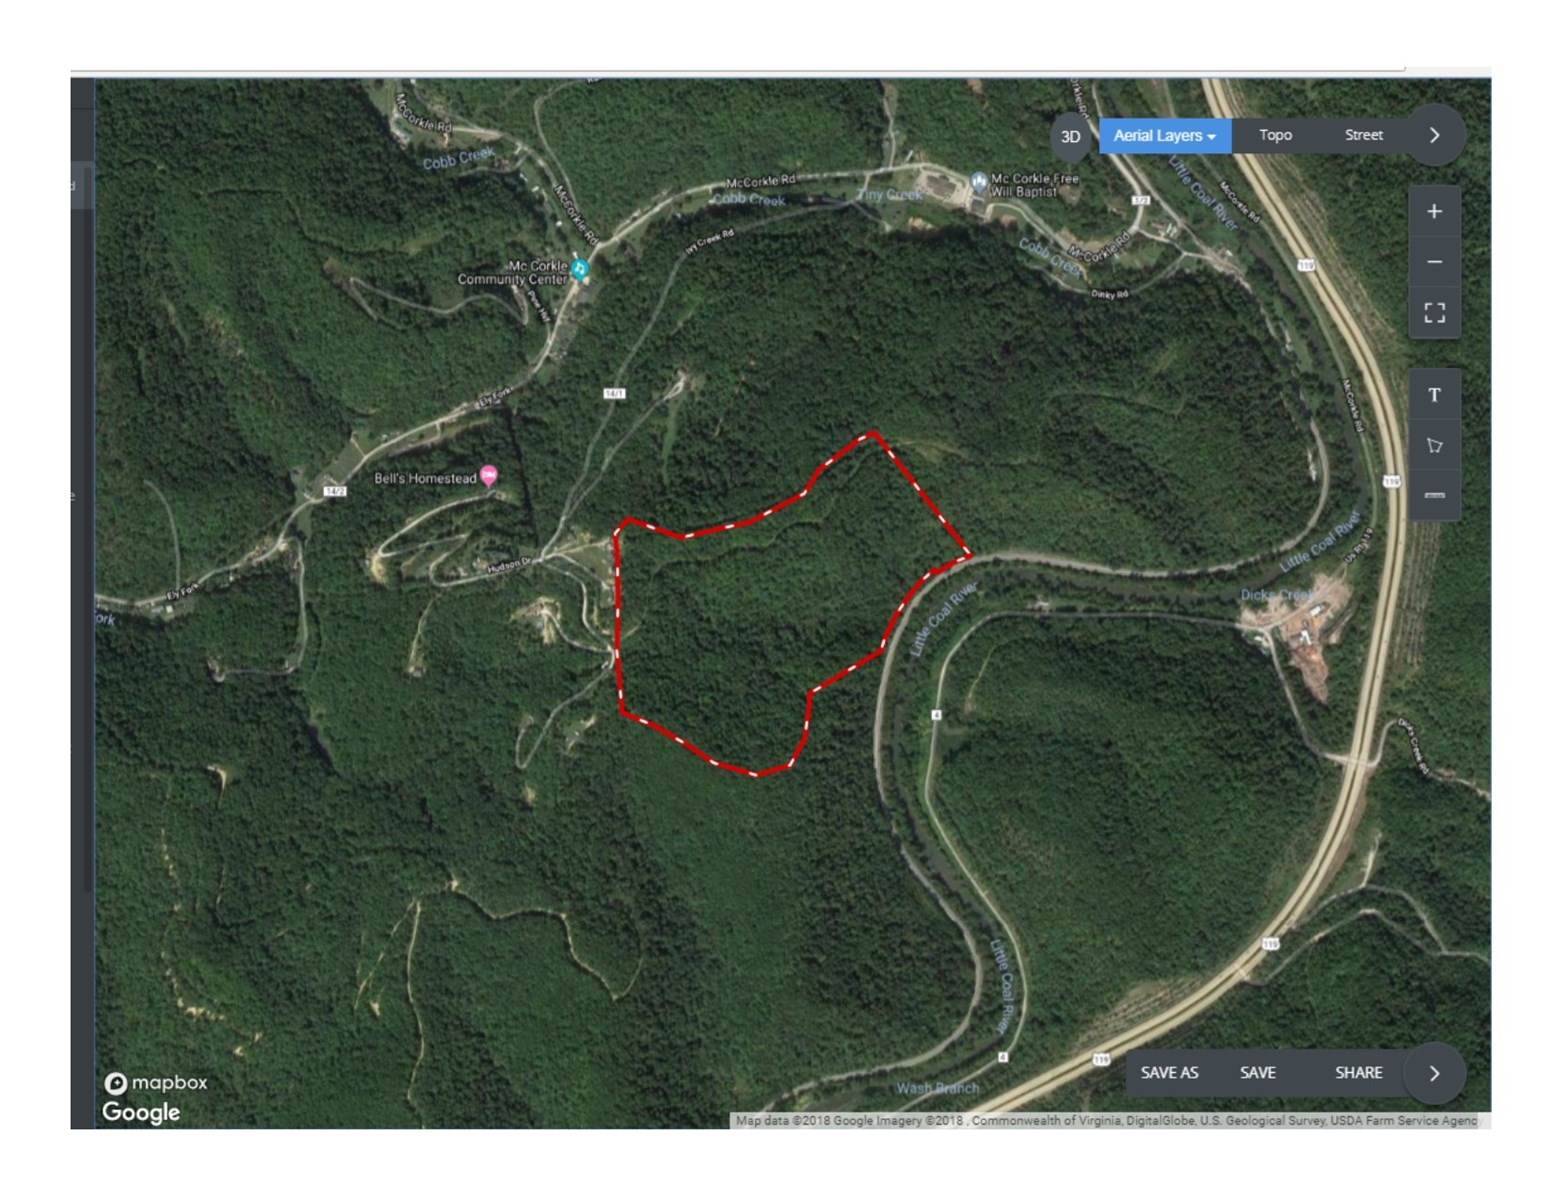 Real Estate Auction - Recreational   Investment   86 +/- acres